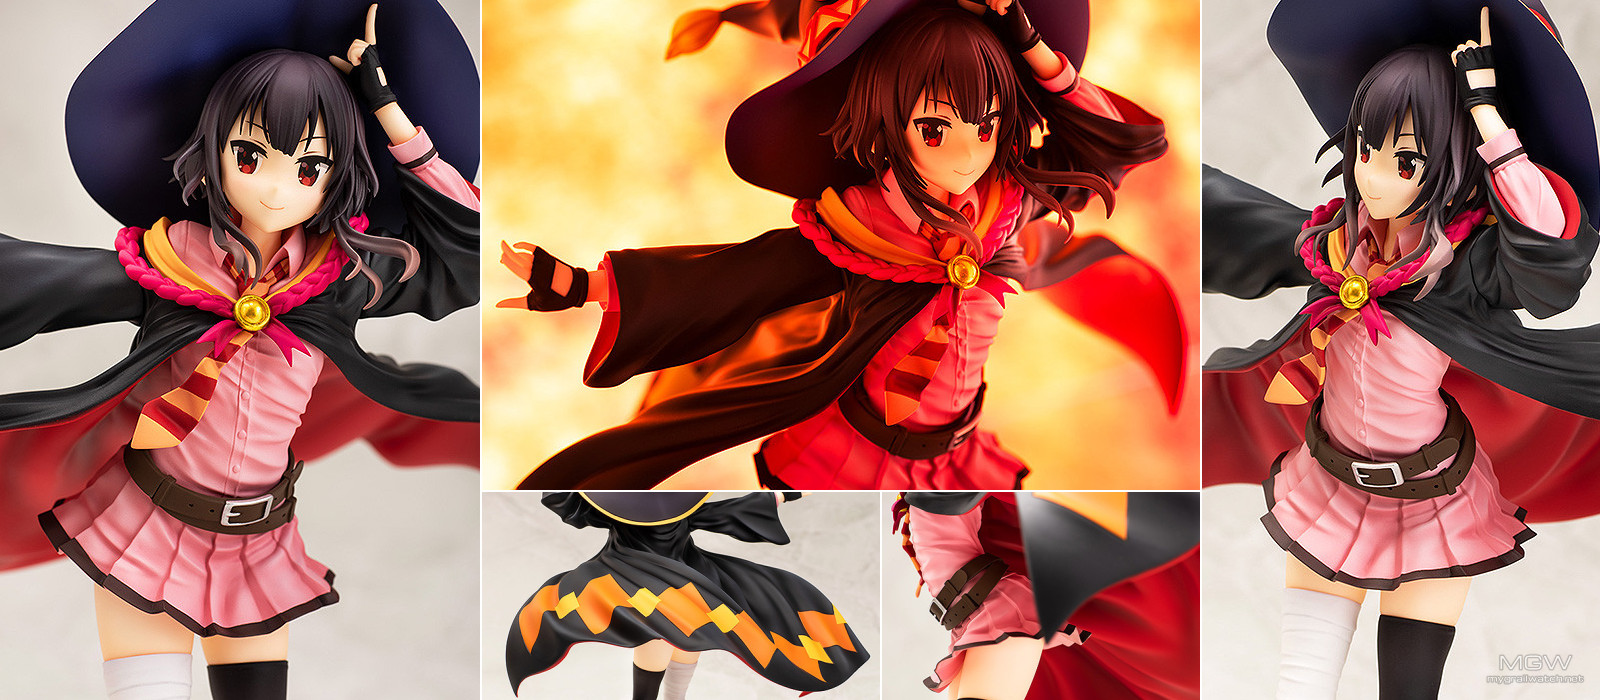 Megumin School Uniform Ver. by Chara Ani from KonoSuba Legend of the Crimson